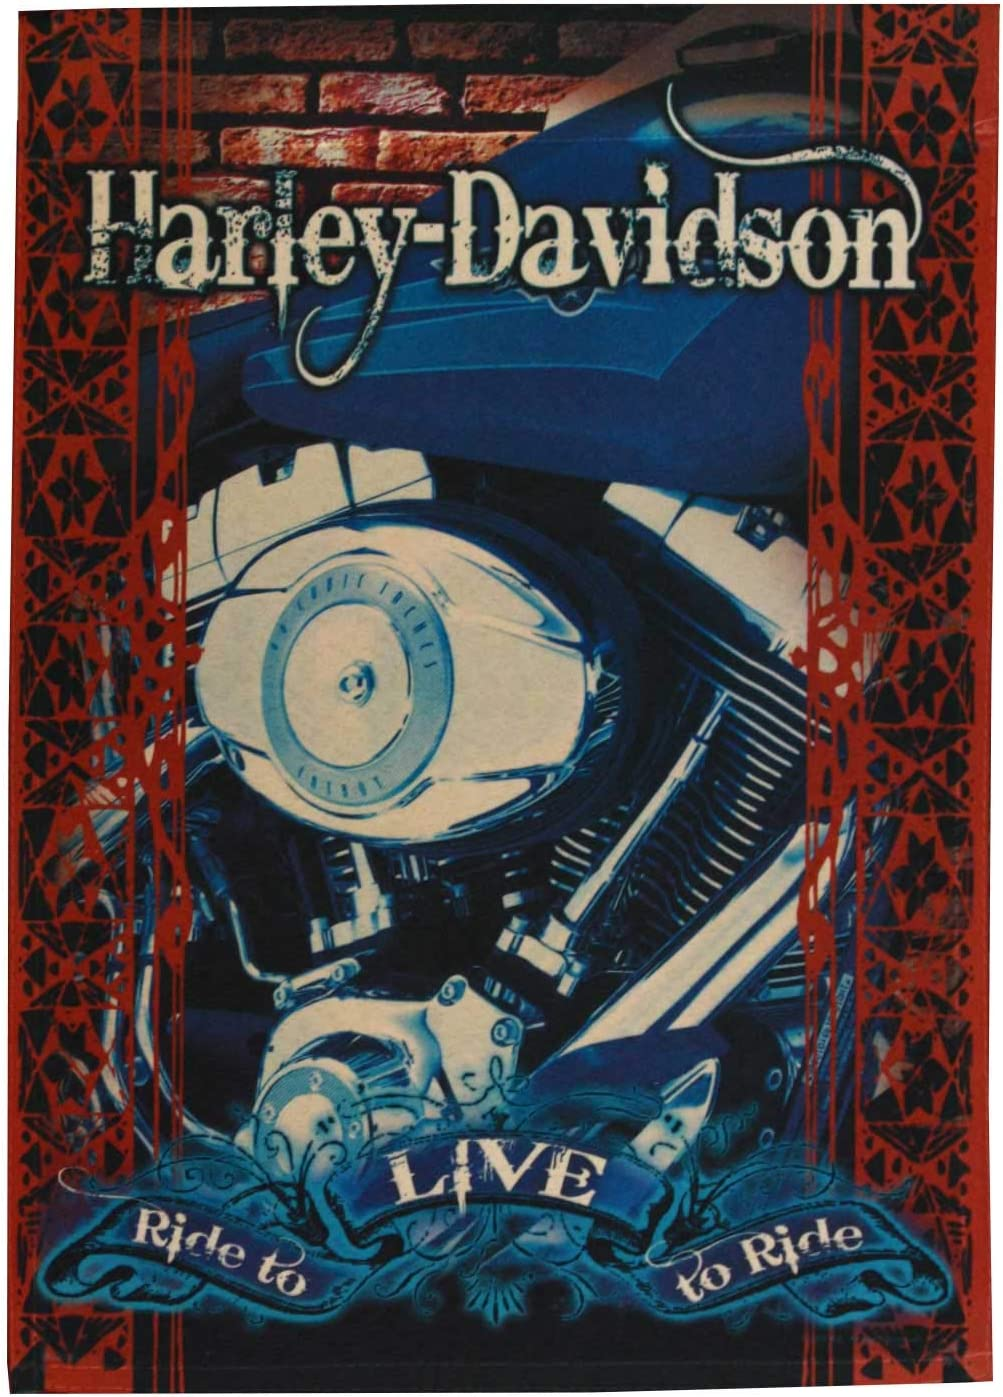 """Harley Davidson """"Ride to Live, Live to Ride"""" Garden Flag, 12.5 x 18-inches"""